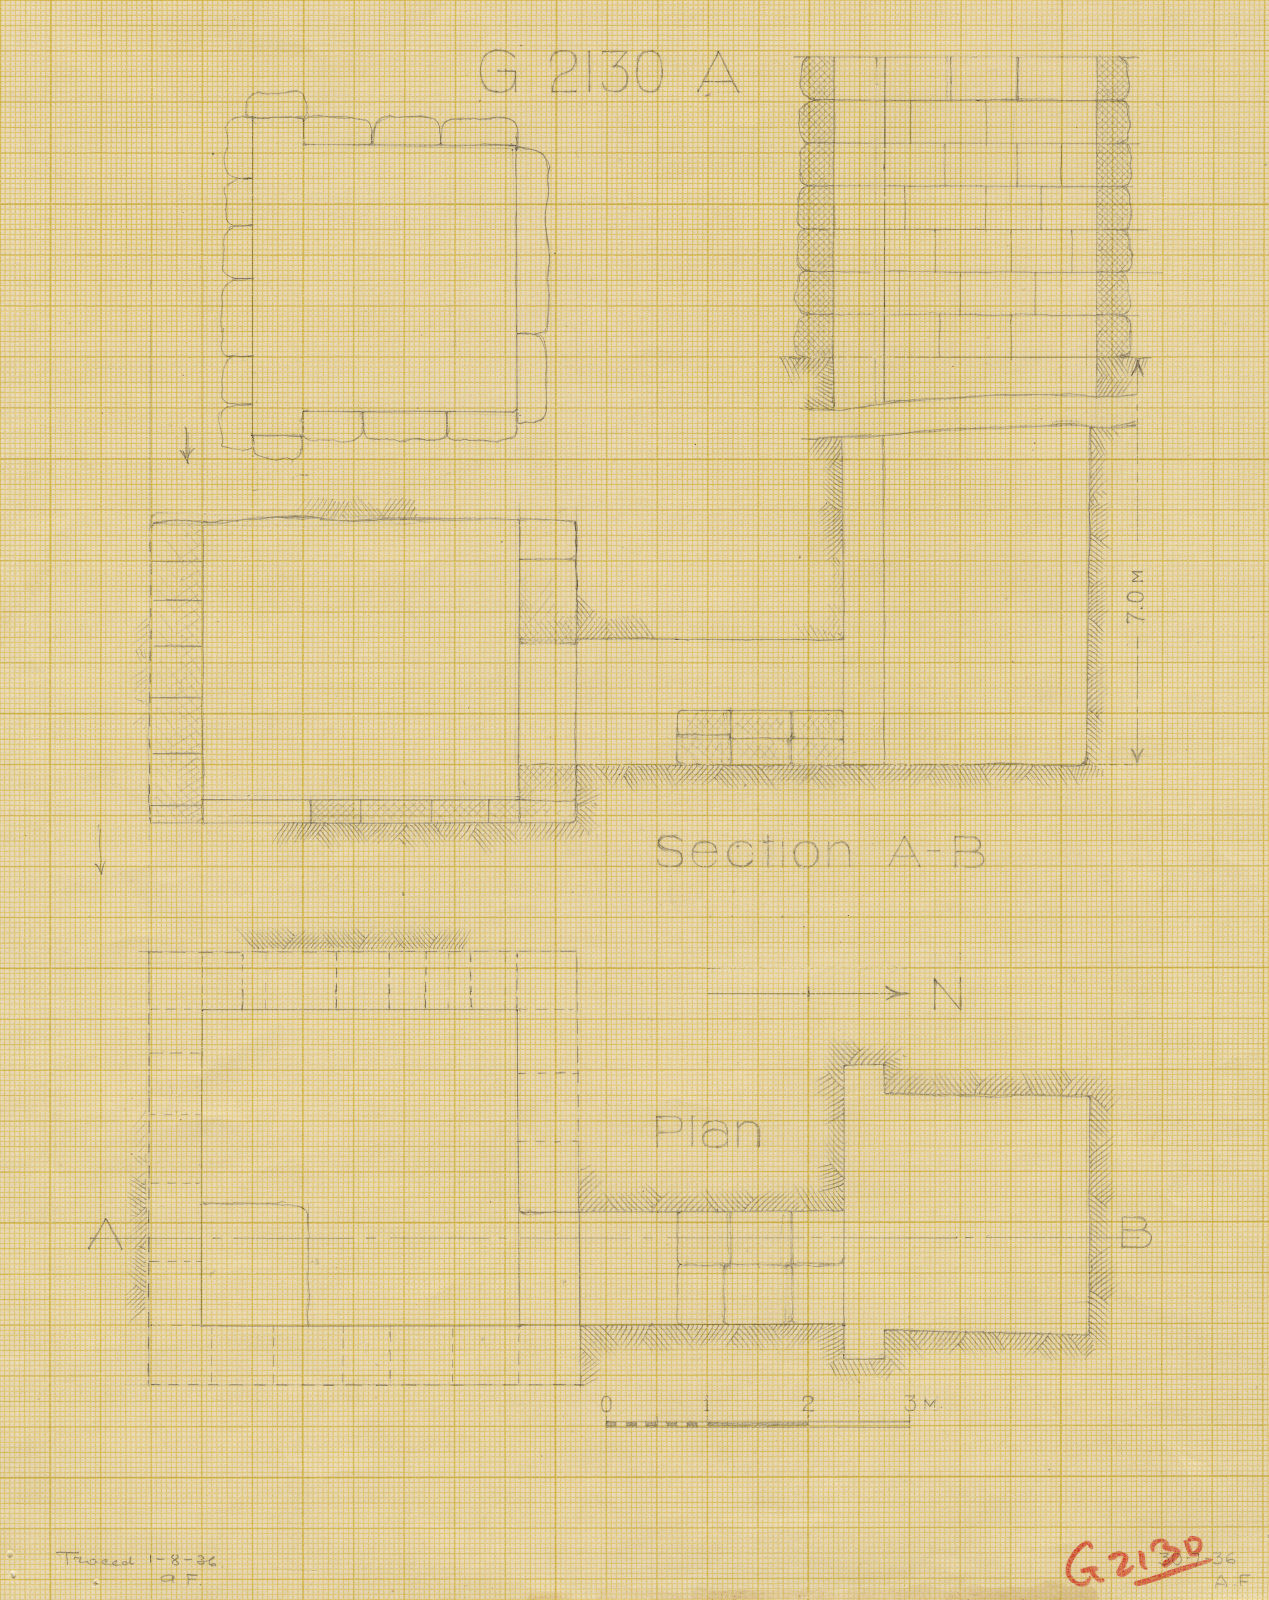 Maps and plans: G 2130, Shaft A